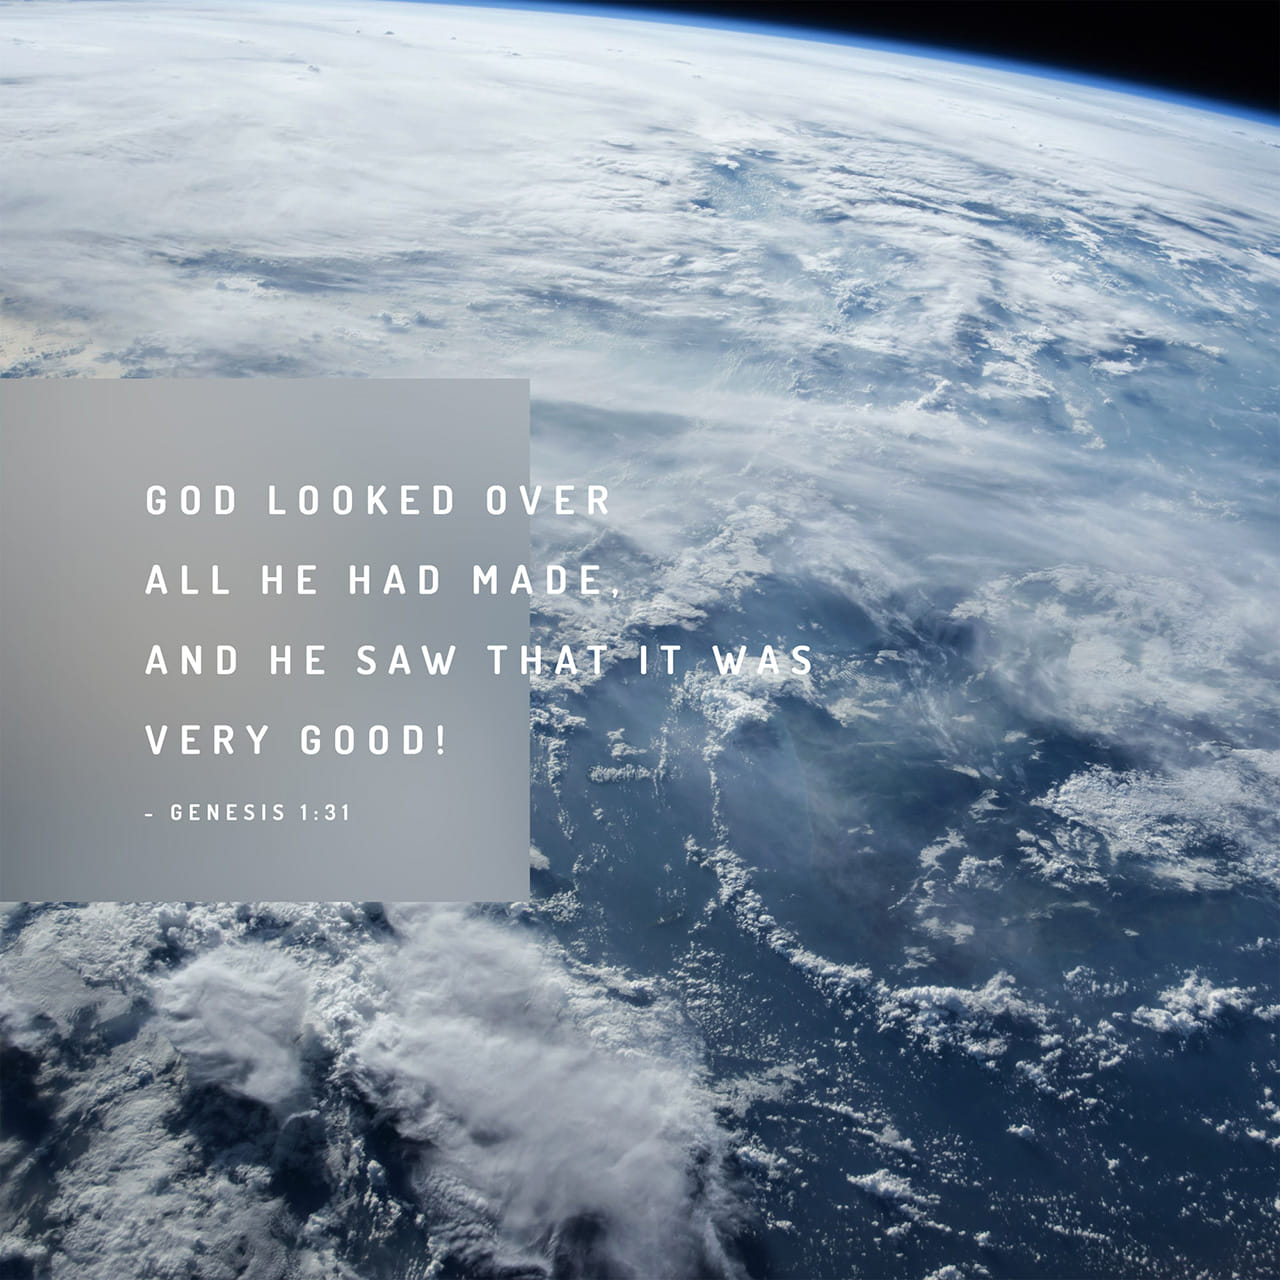 Genesis 1:31 Then God looked over all he had made, and he saw that it was  very good! And evening passed and morning came, marking the sixth day.